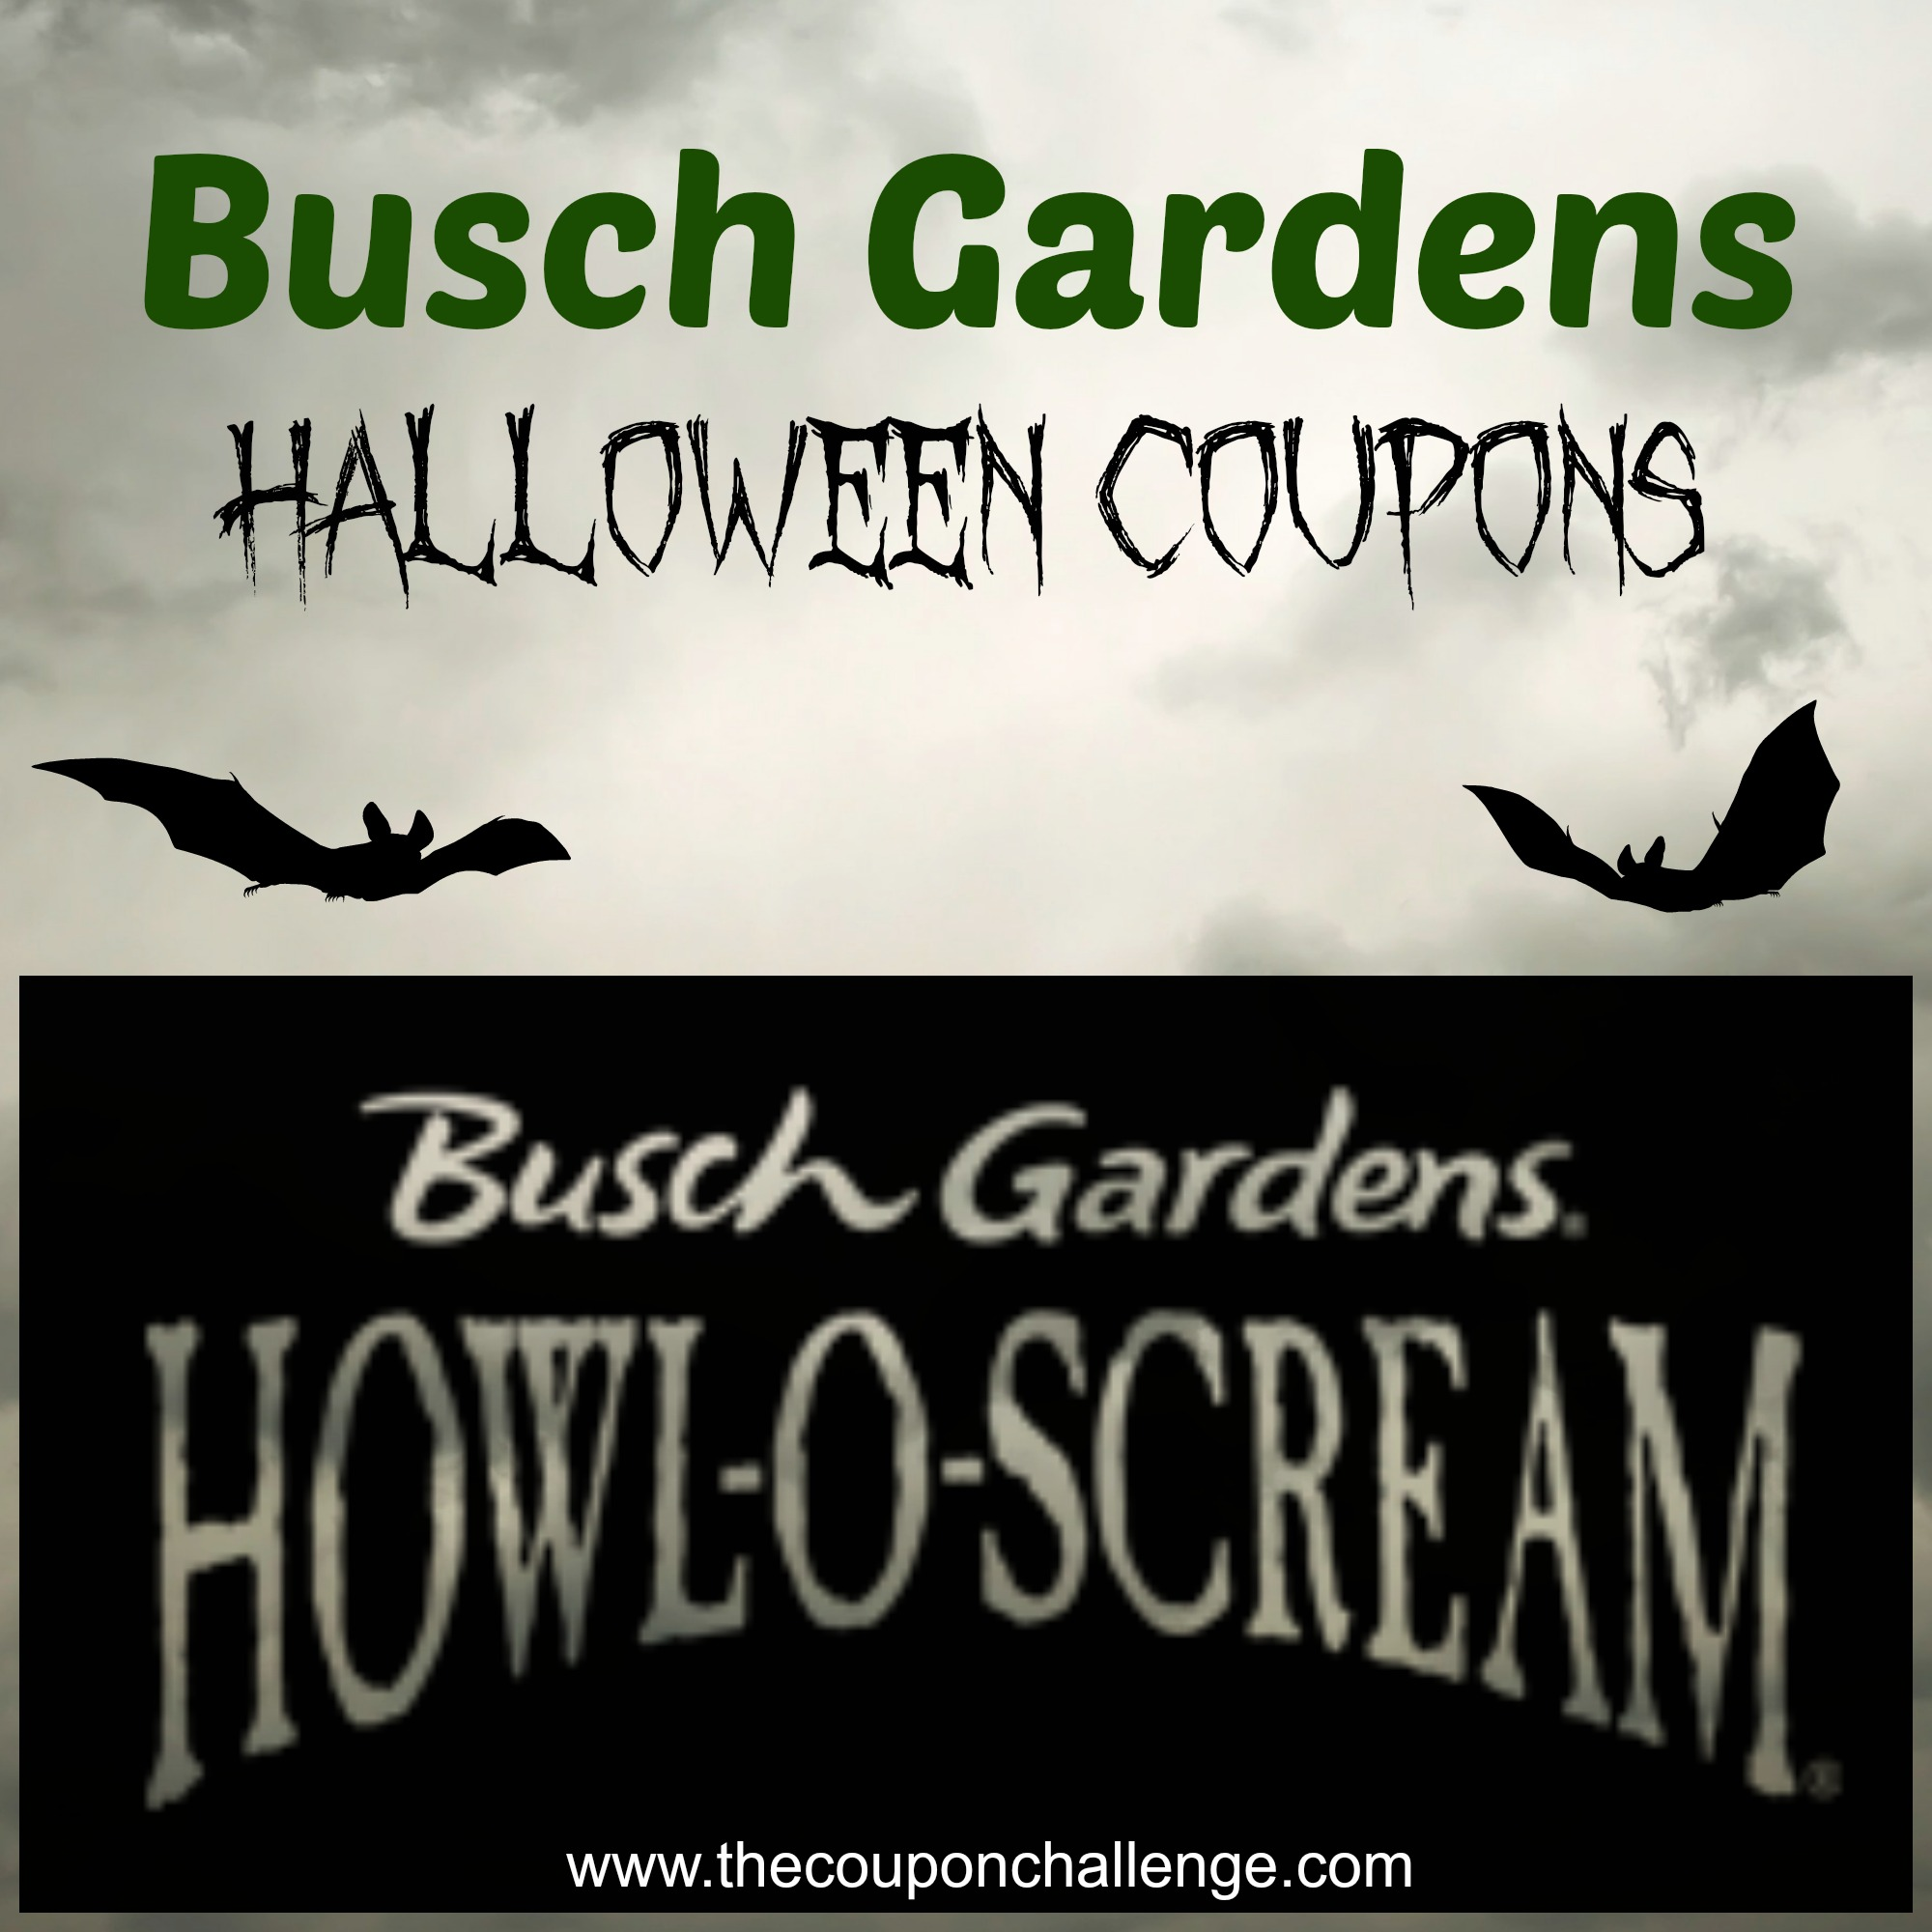 Busch Gardens Halloween Coupons